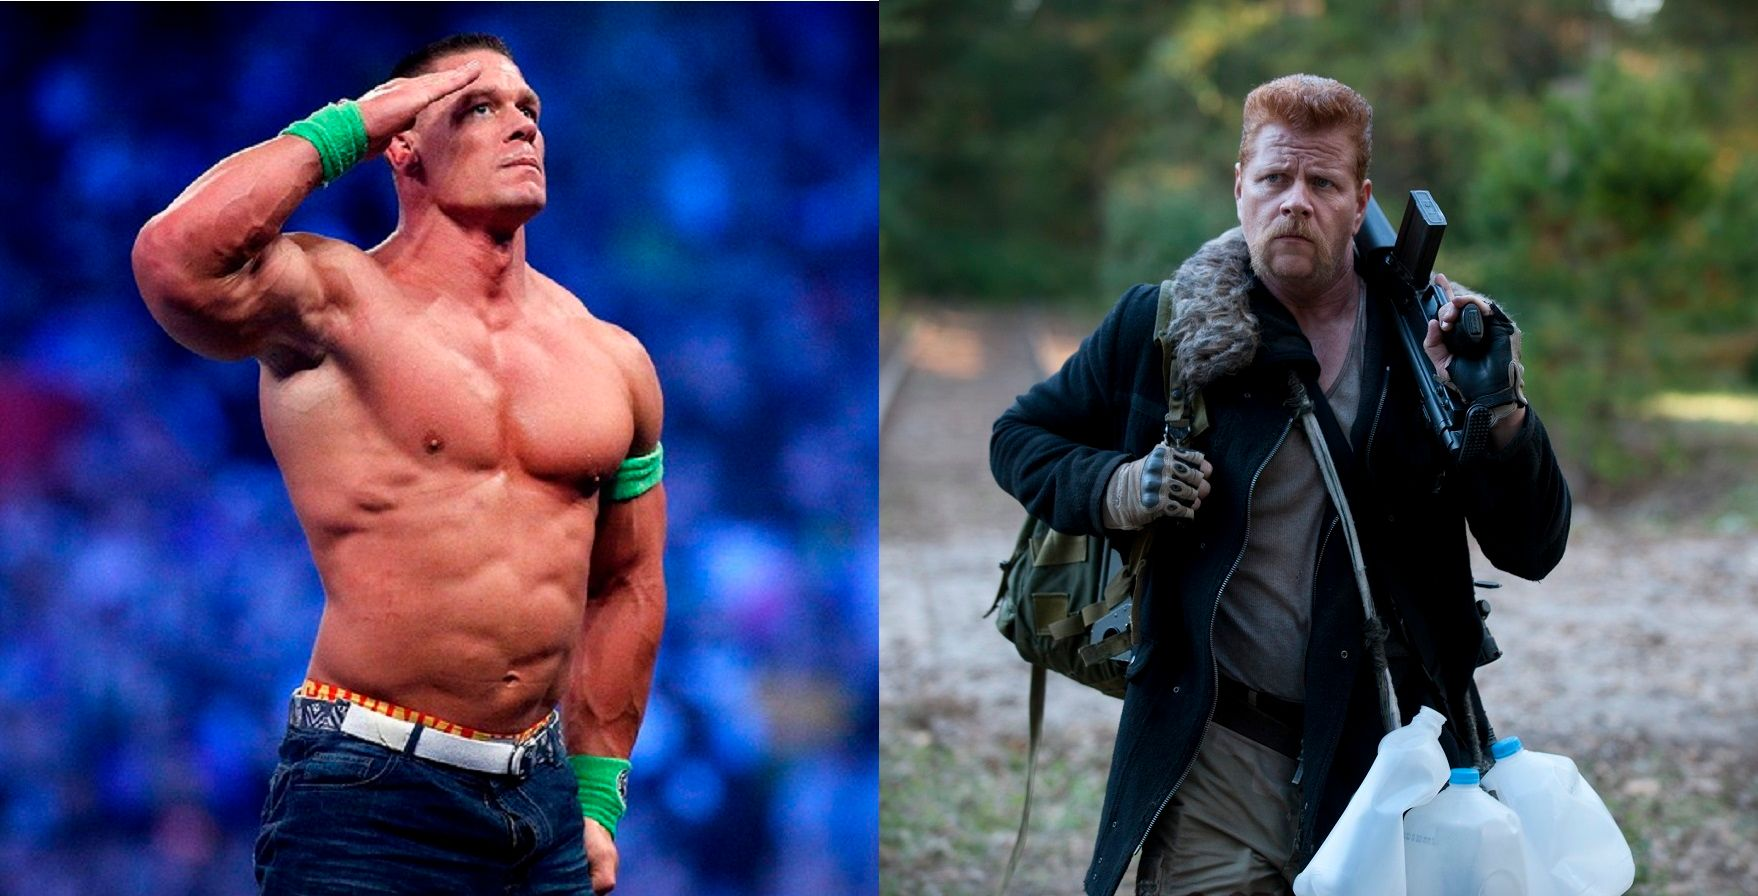 14 WWE Wrestlers & Their Walking Dead Counterparts